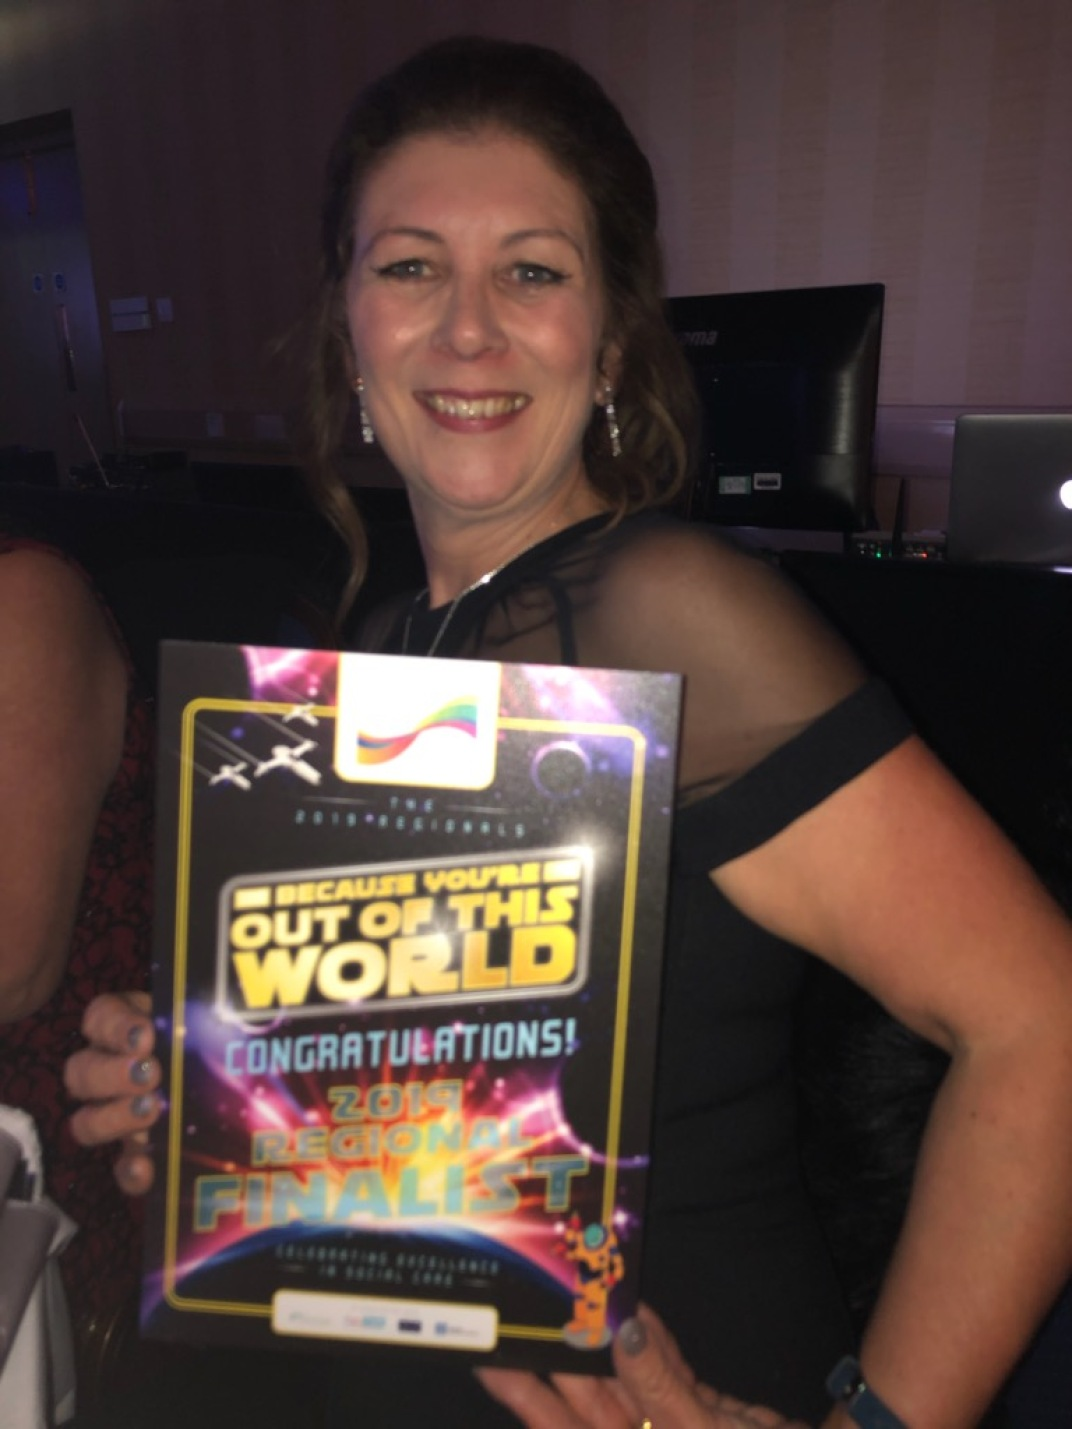 Cathy with her runner up award